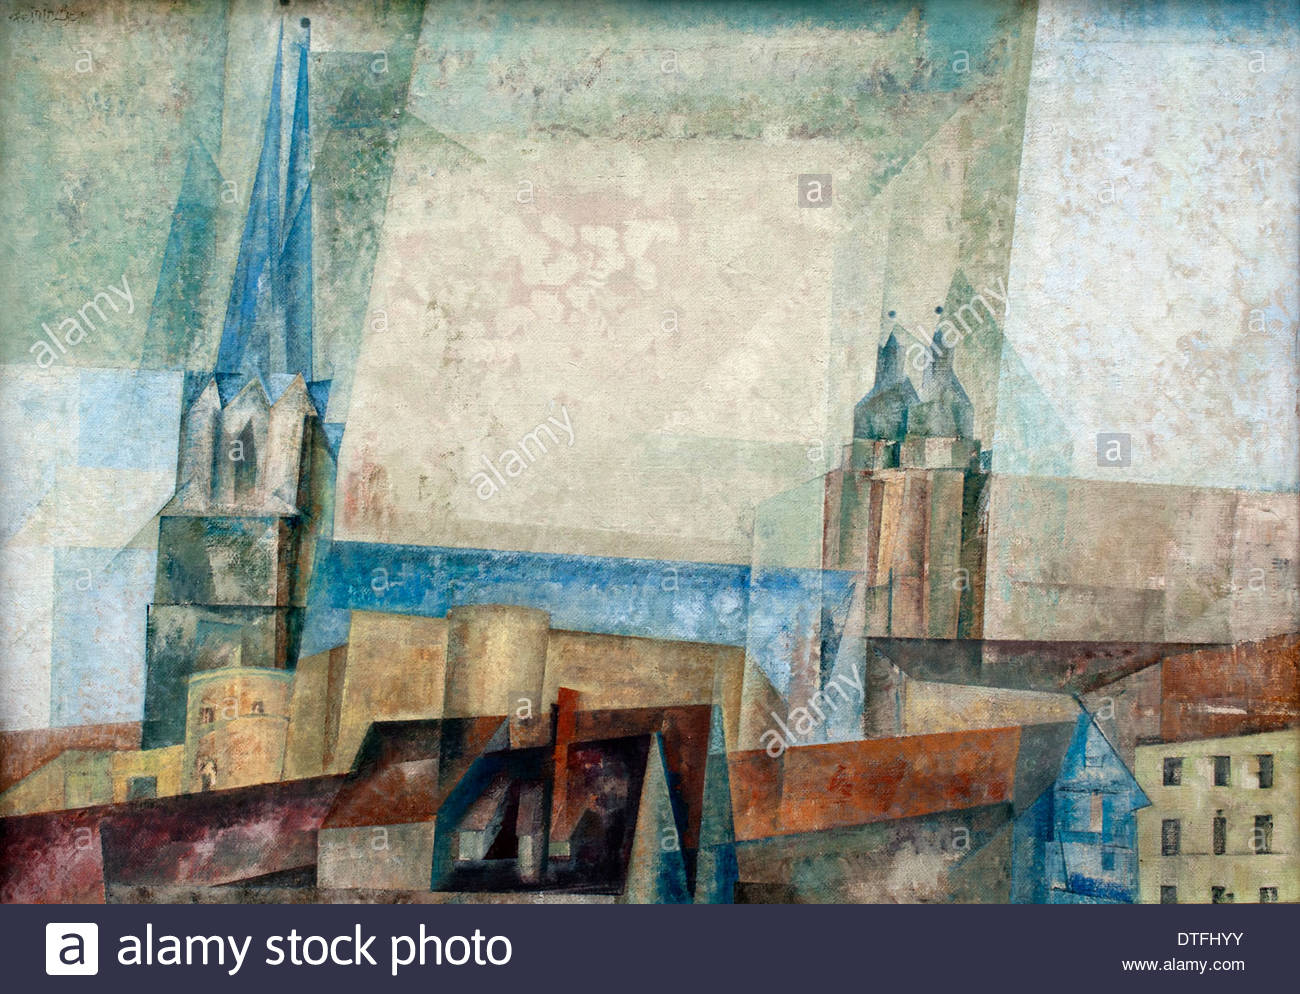 thront ber der stadt halle lyonel feininger 1871 1956. Black Bedroom Furniture Sets. Home Design Ideas